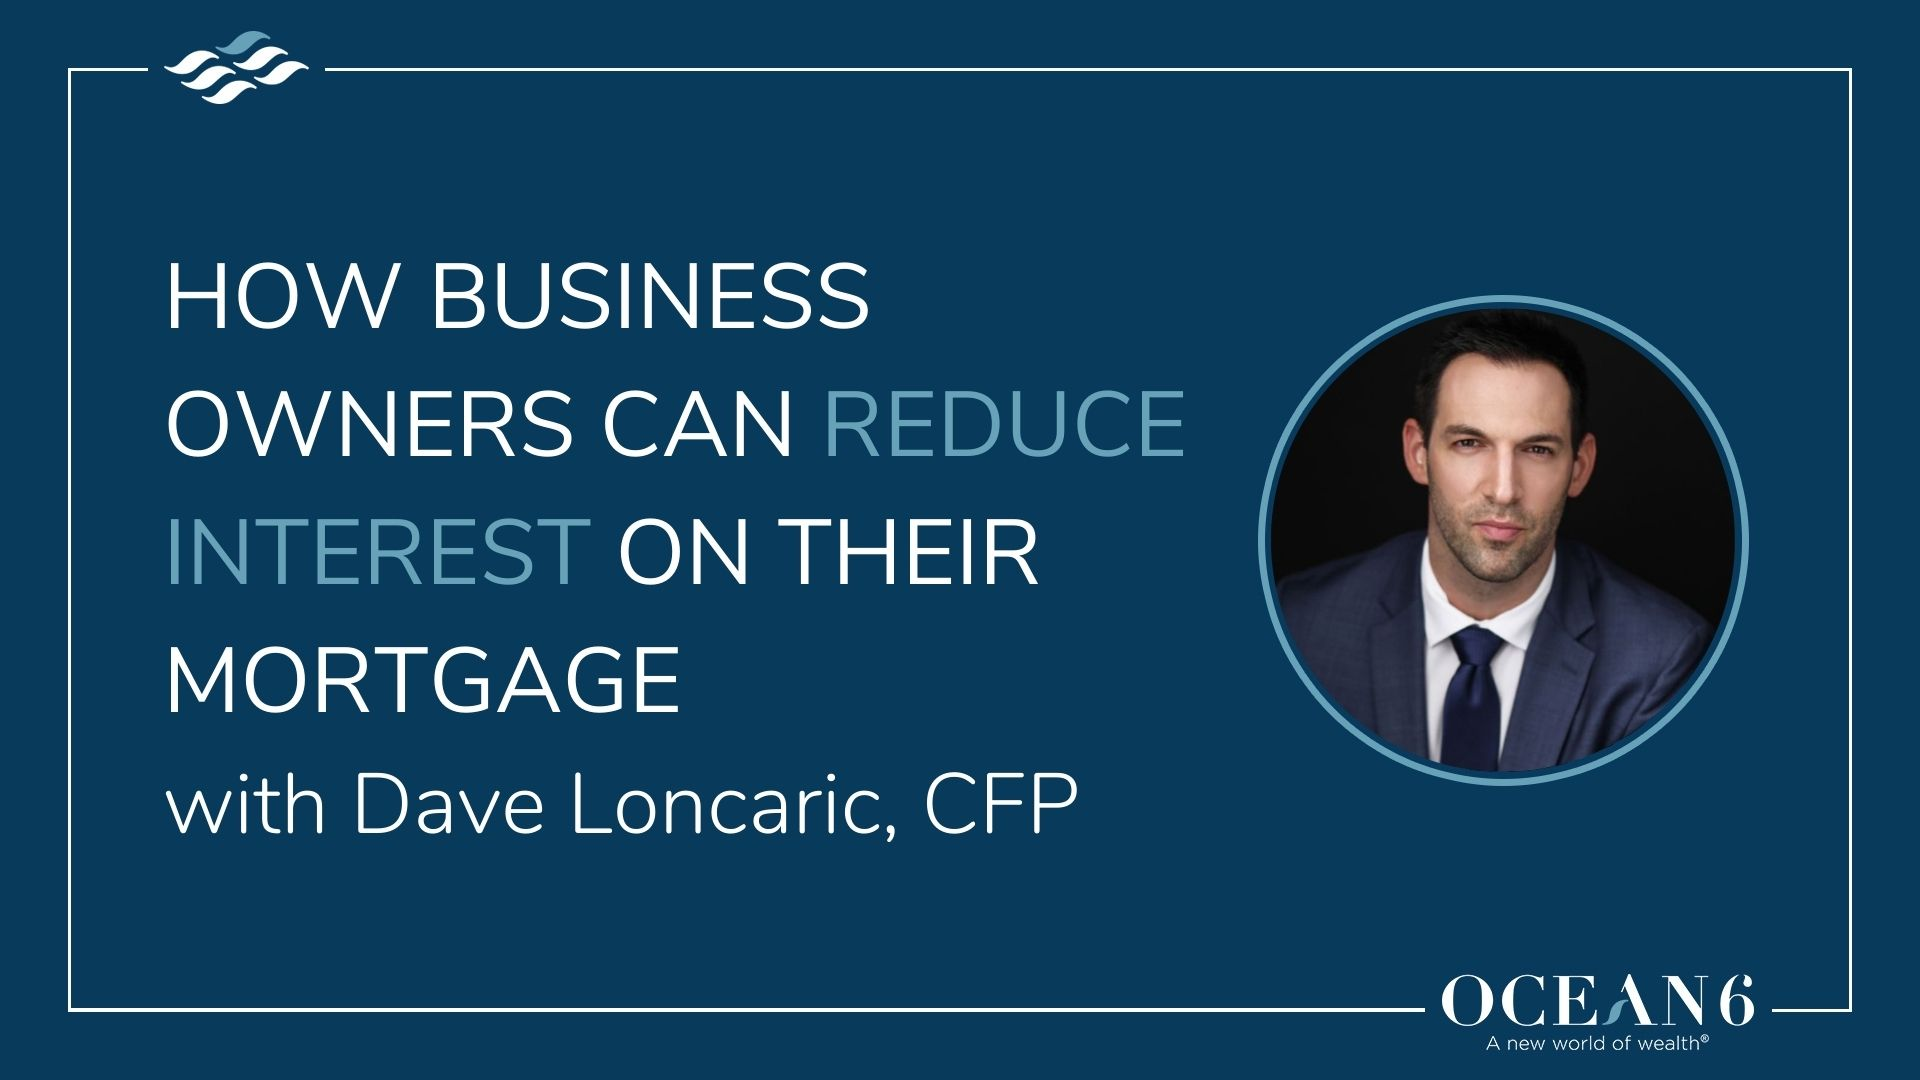 How Business Owners Can Reduce Interest on their Mortgage